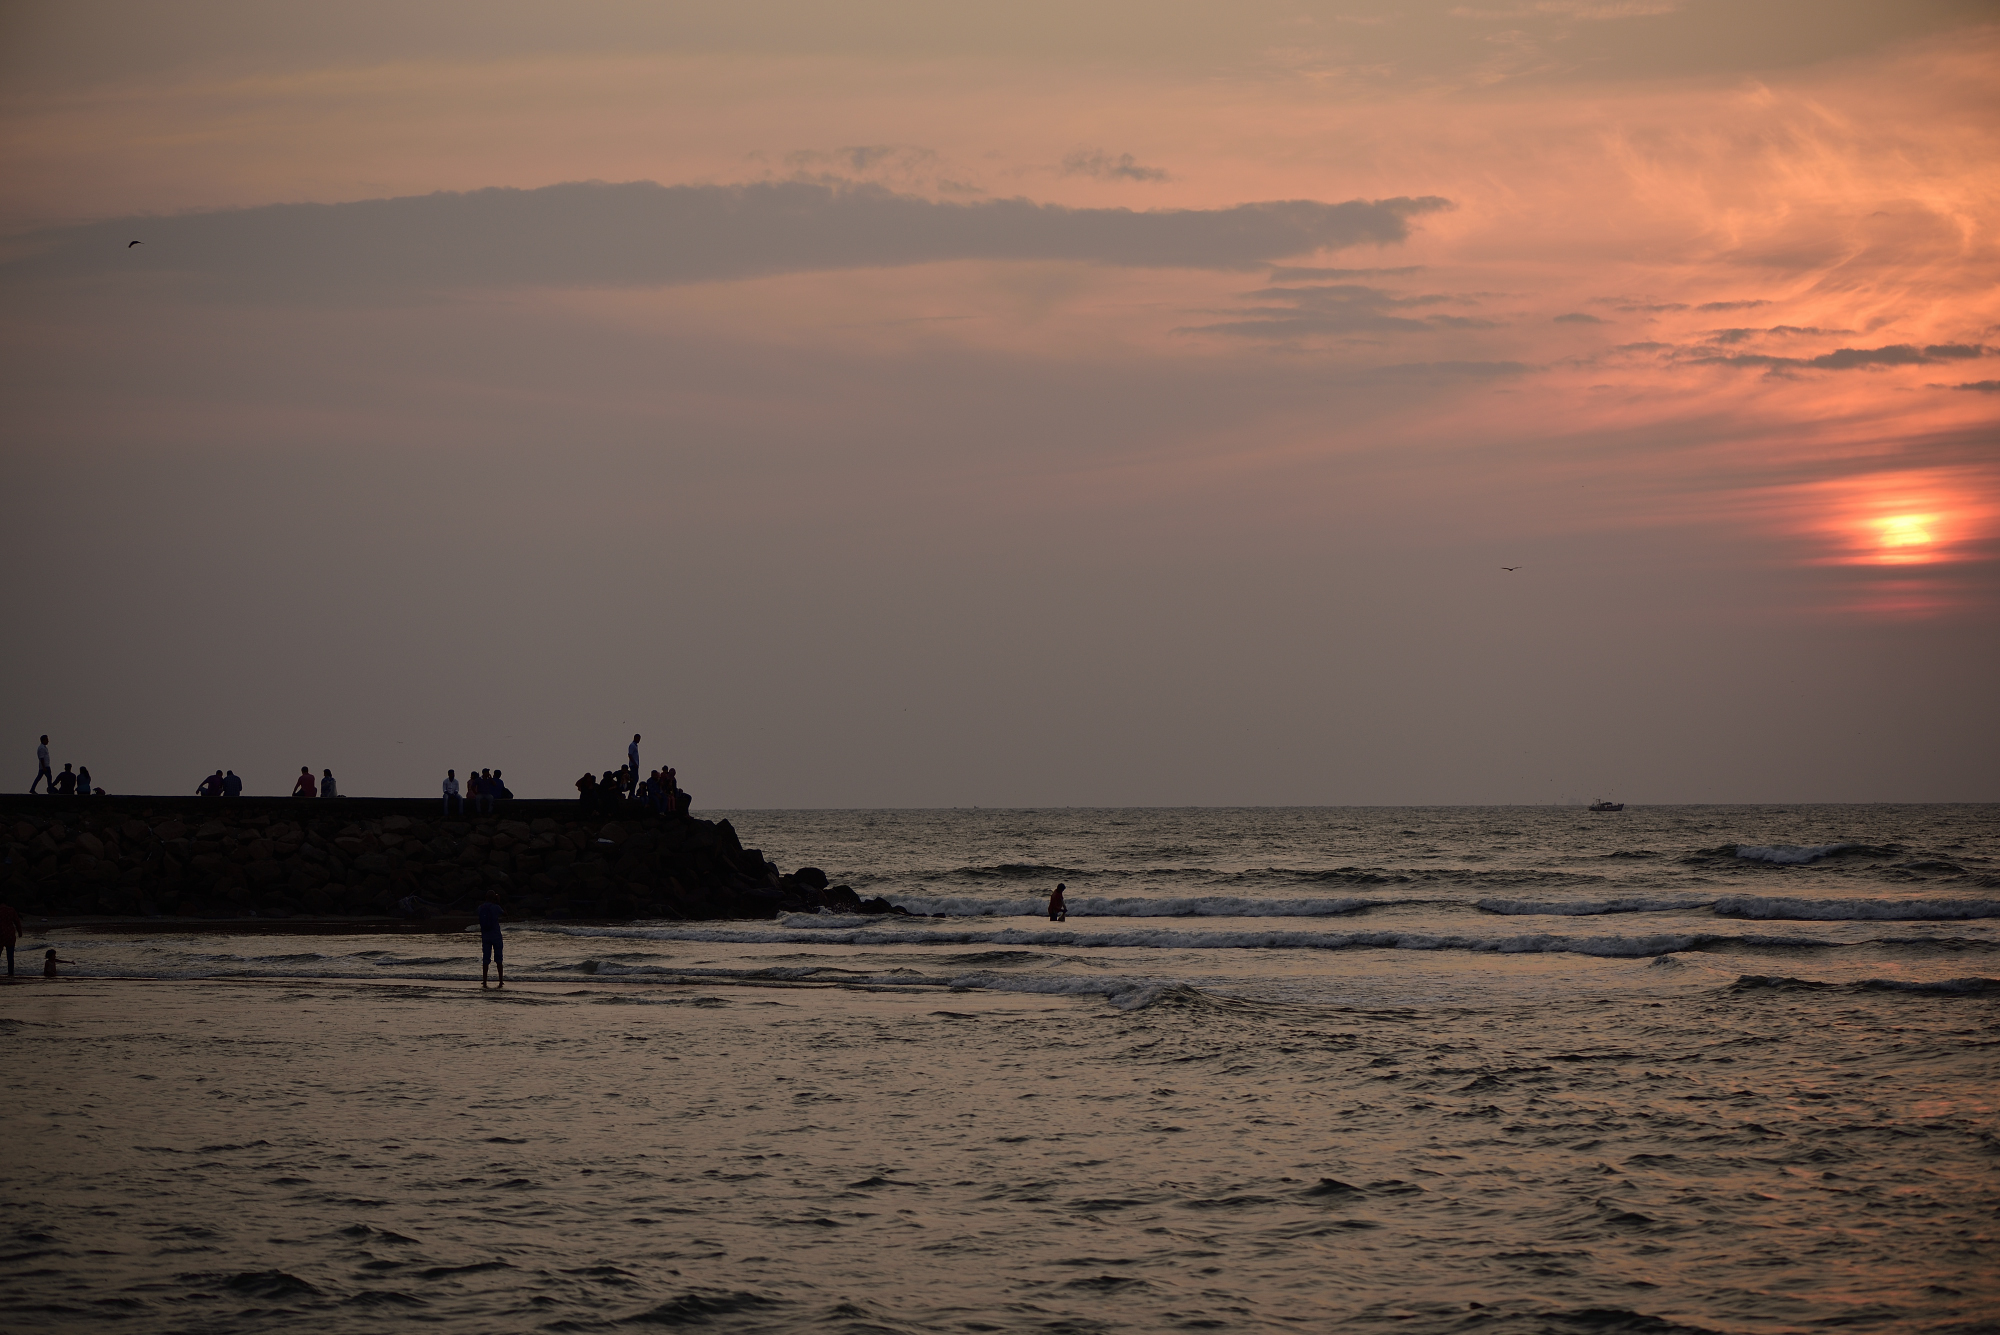 This is a beautiful setting with sun-set and silhoutte showing human life at Fort Kochi